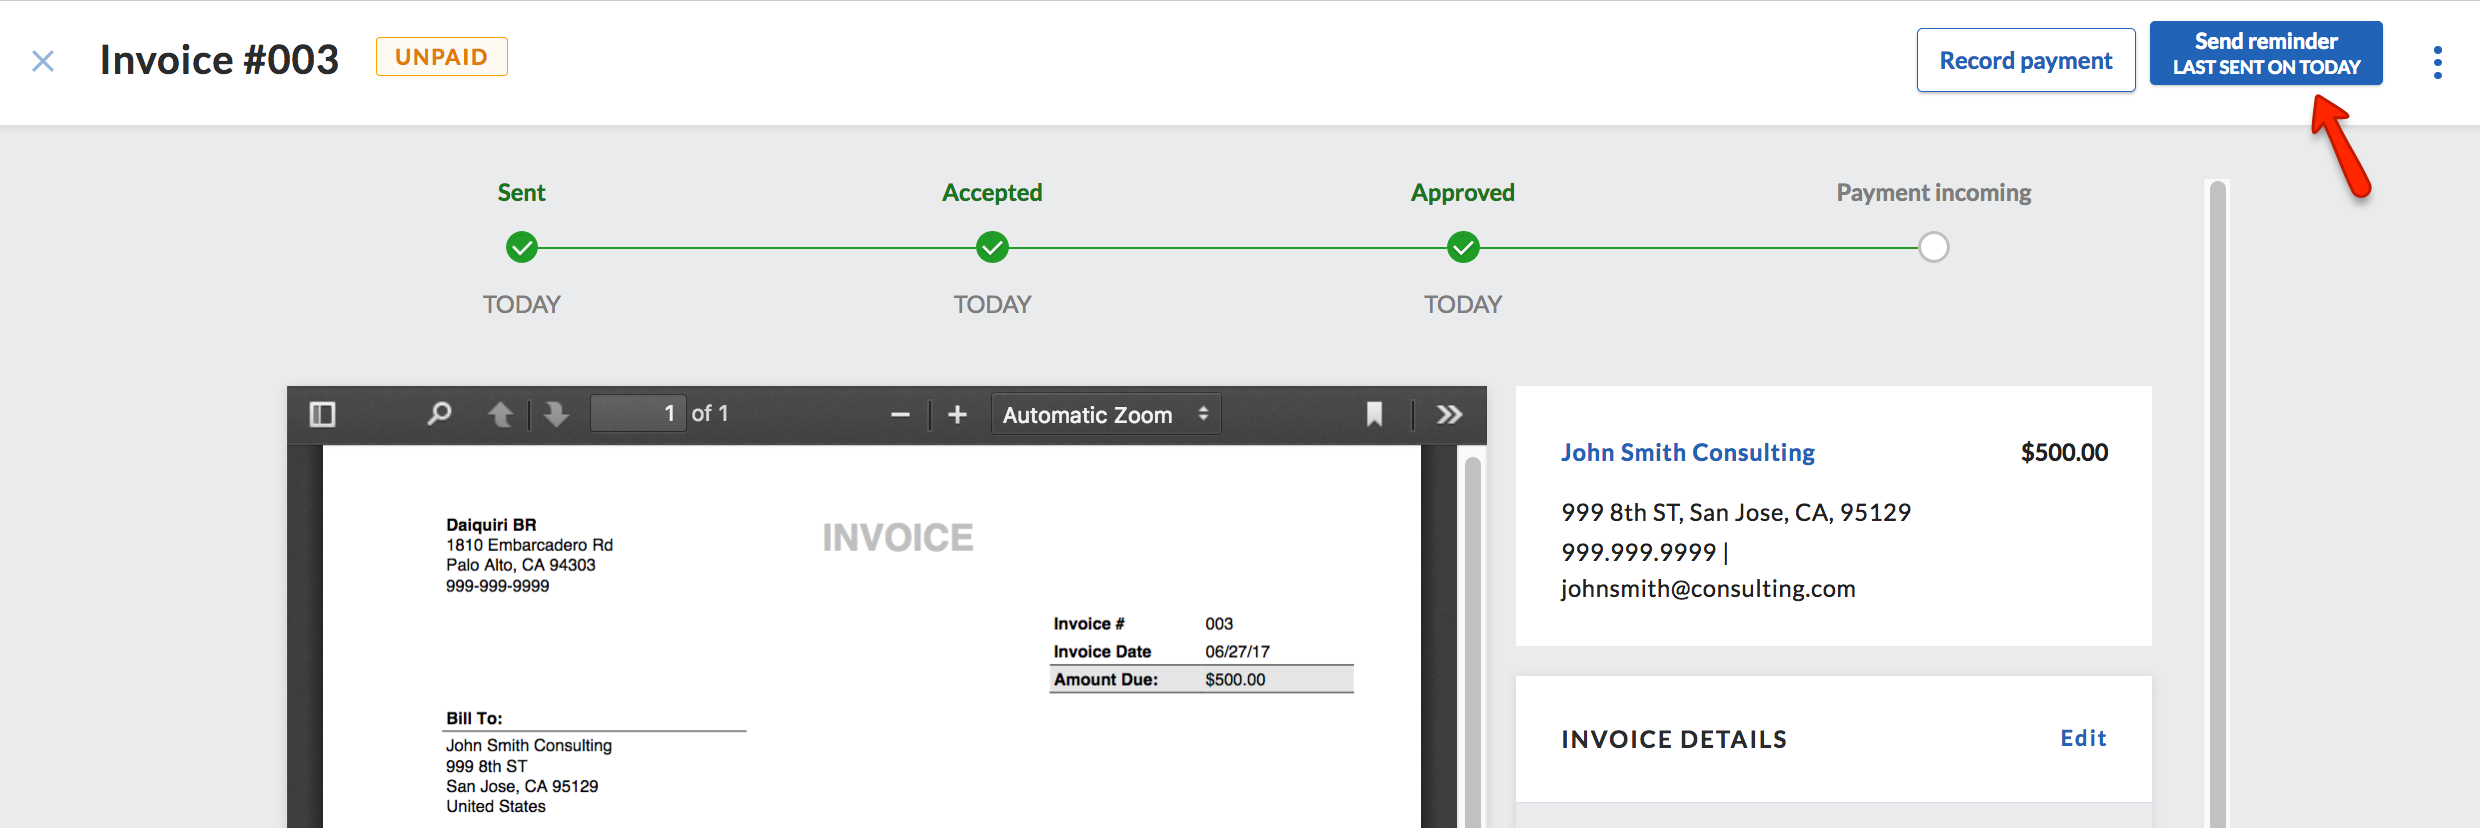 Send Reminder For Unpaid Invoice Support - Quickbooks invoice reminders